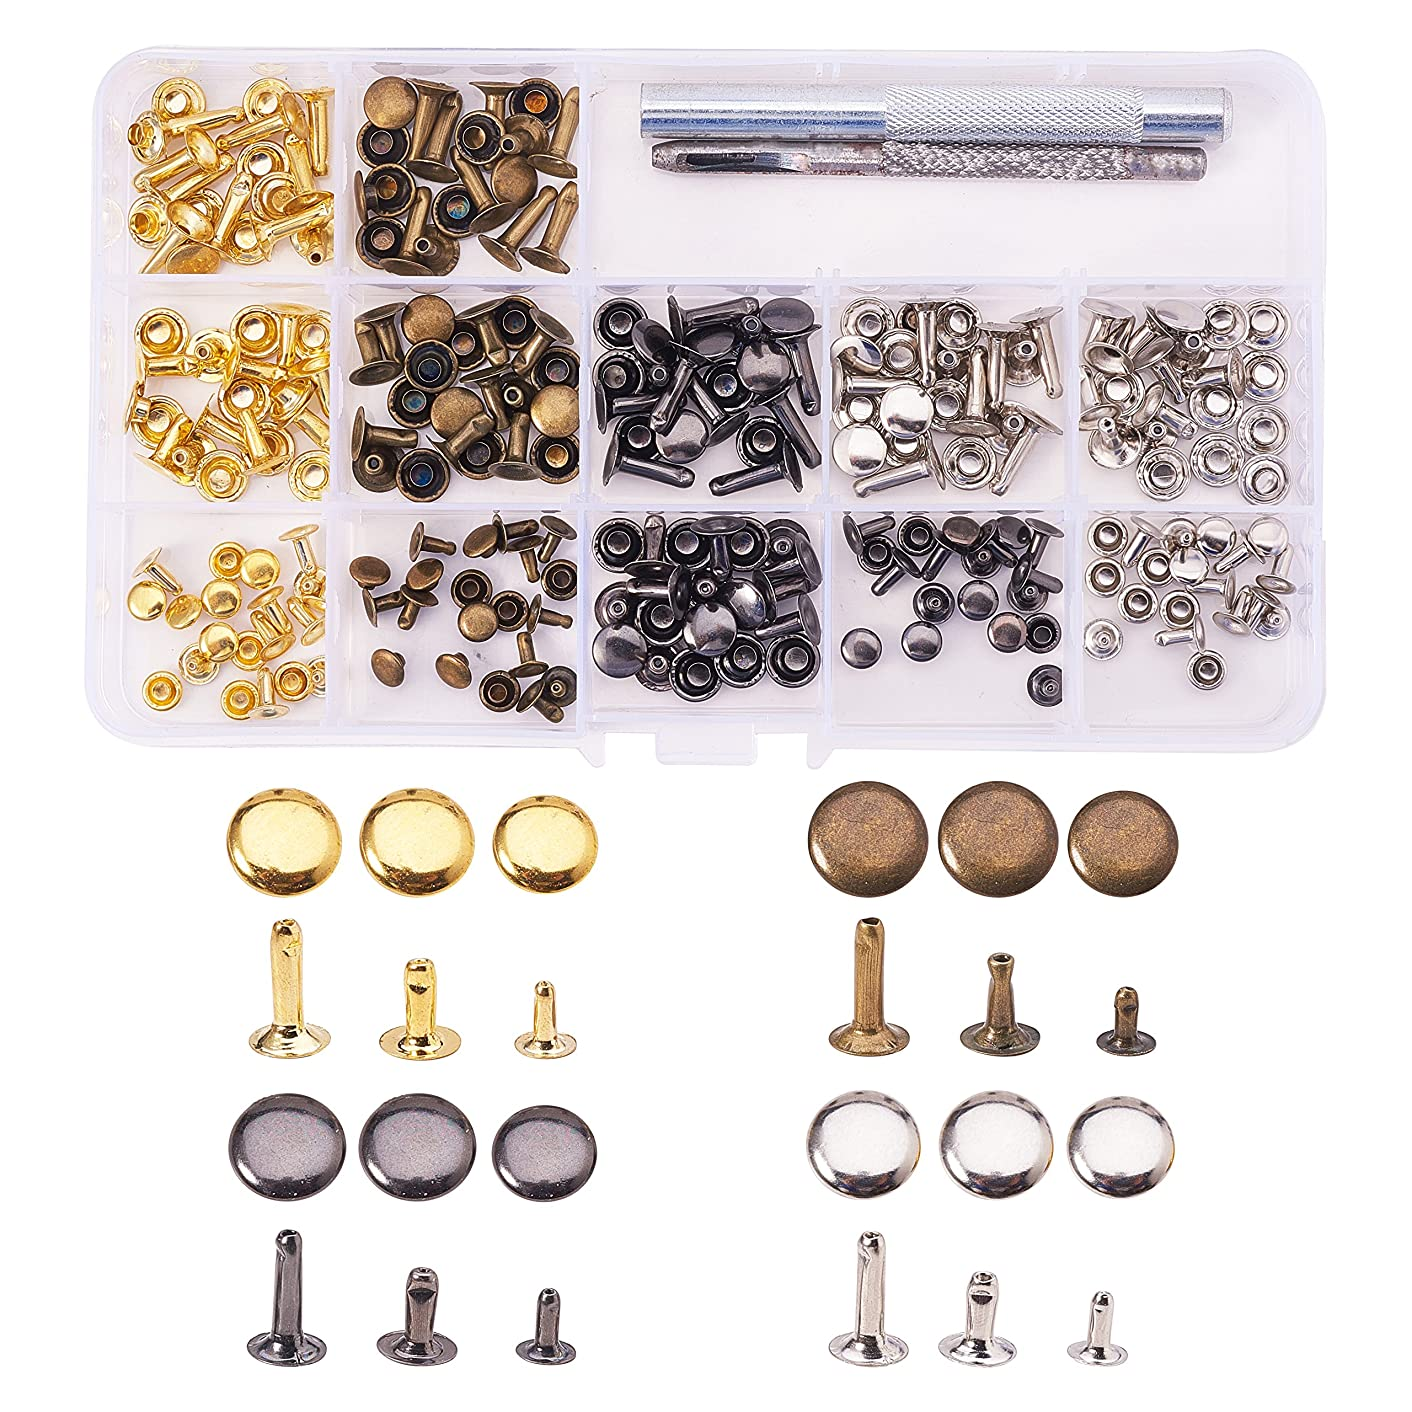 PandaHall Elite 120 Set Flat Round Rivets Single Cap Rivet Tubular Iron Studs Snap Buttons 3 Sizes with Fixing Tool Kit for Leather Craft Repairs Decoration Mixed Color